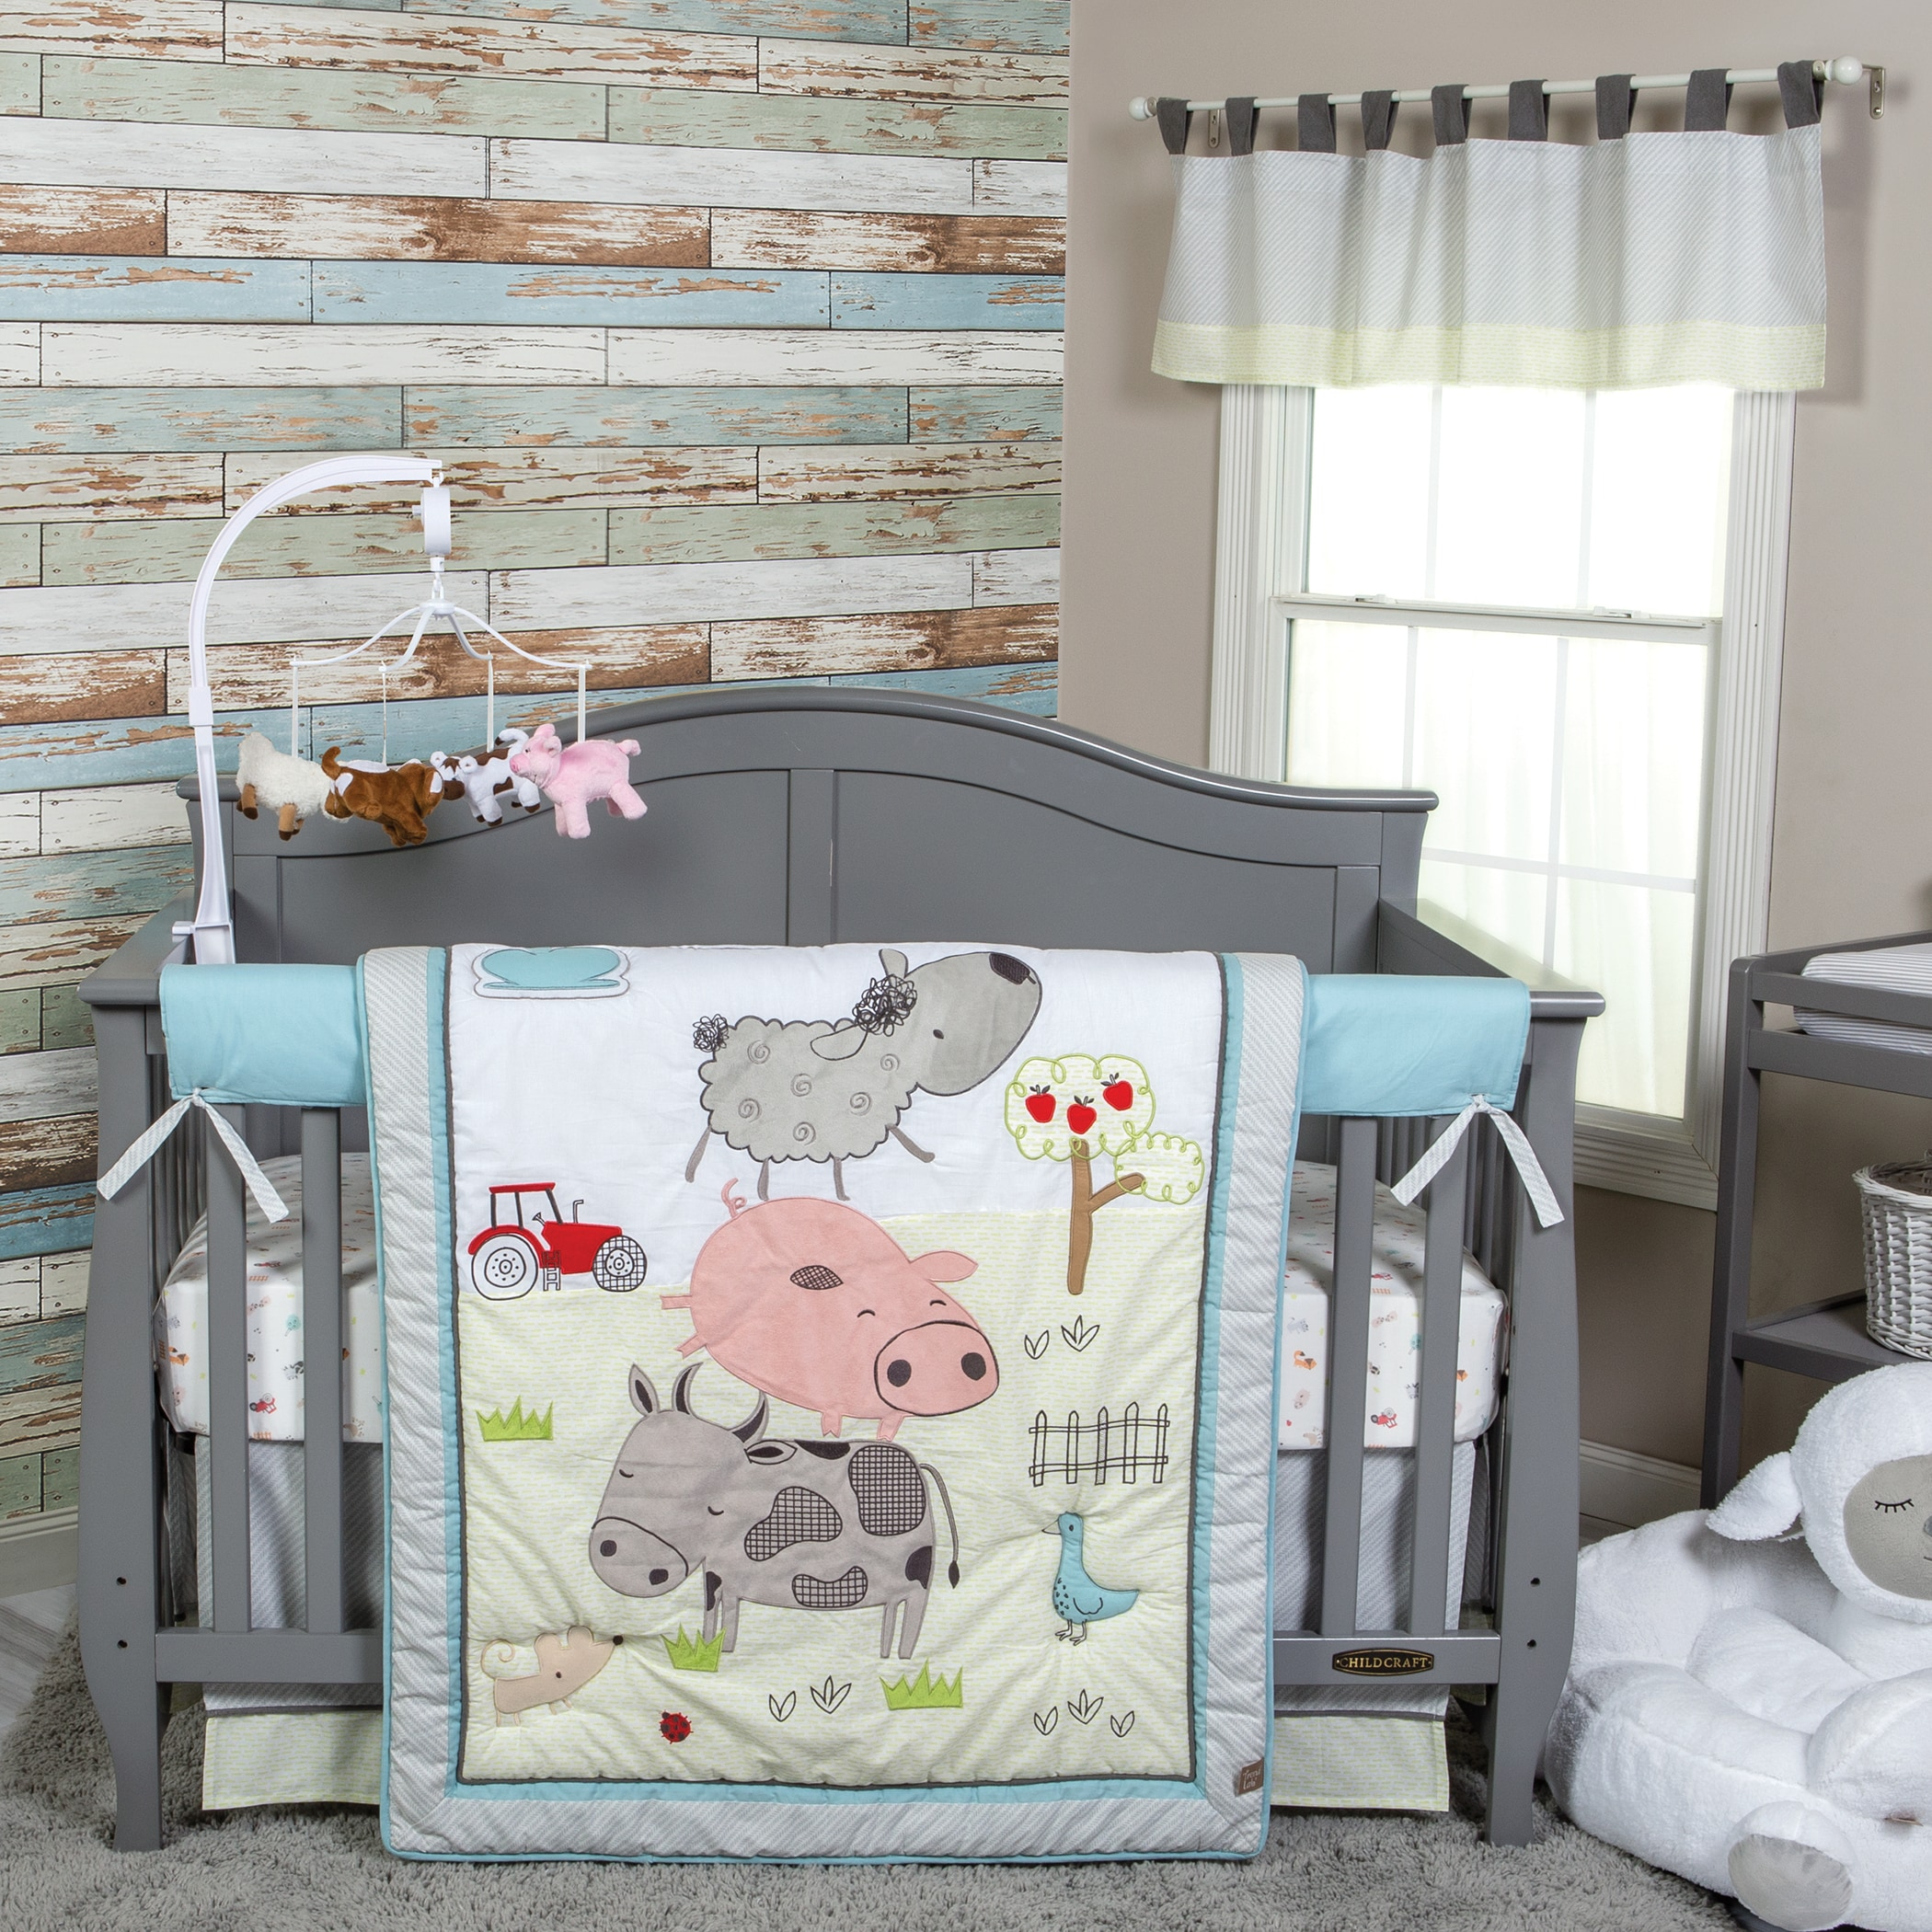 Baby Crib Bedding Set 4 Psc Animal Bed Comforter Boys Girls Nursery Decor New Ebay